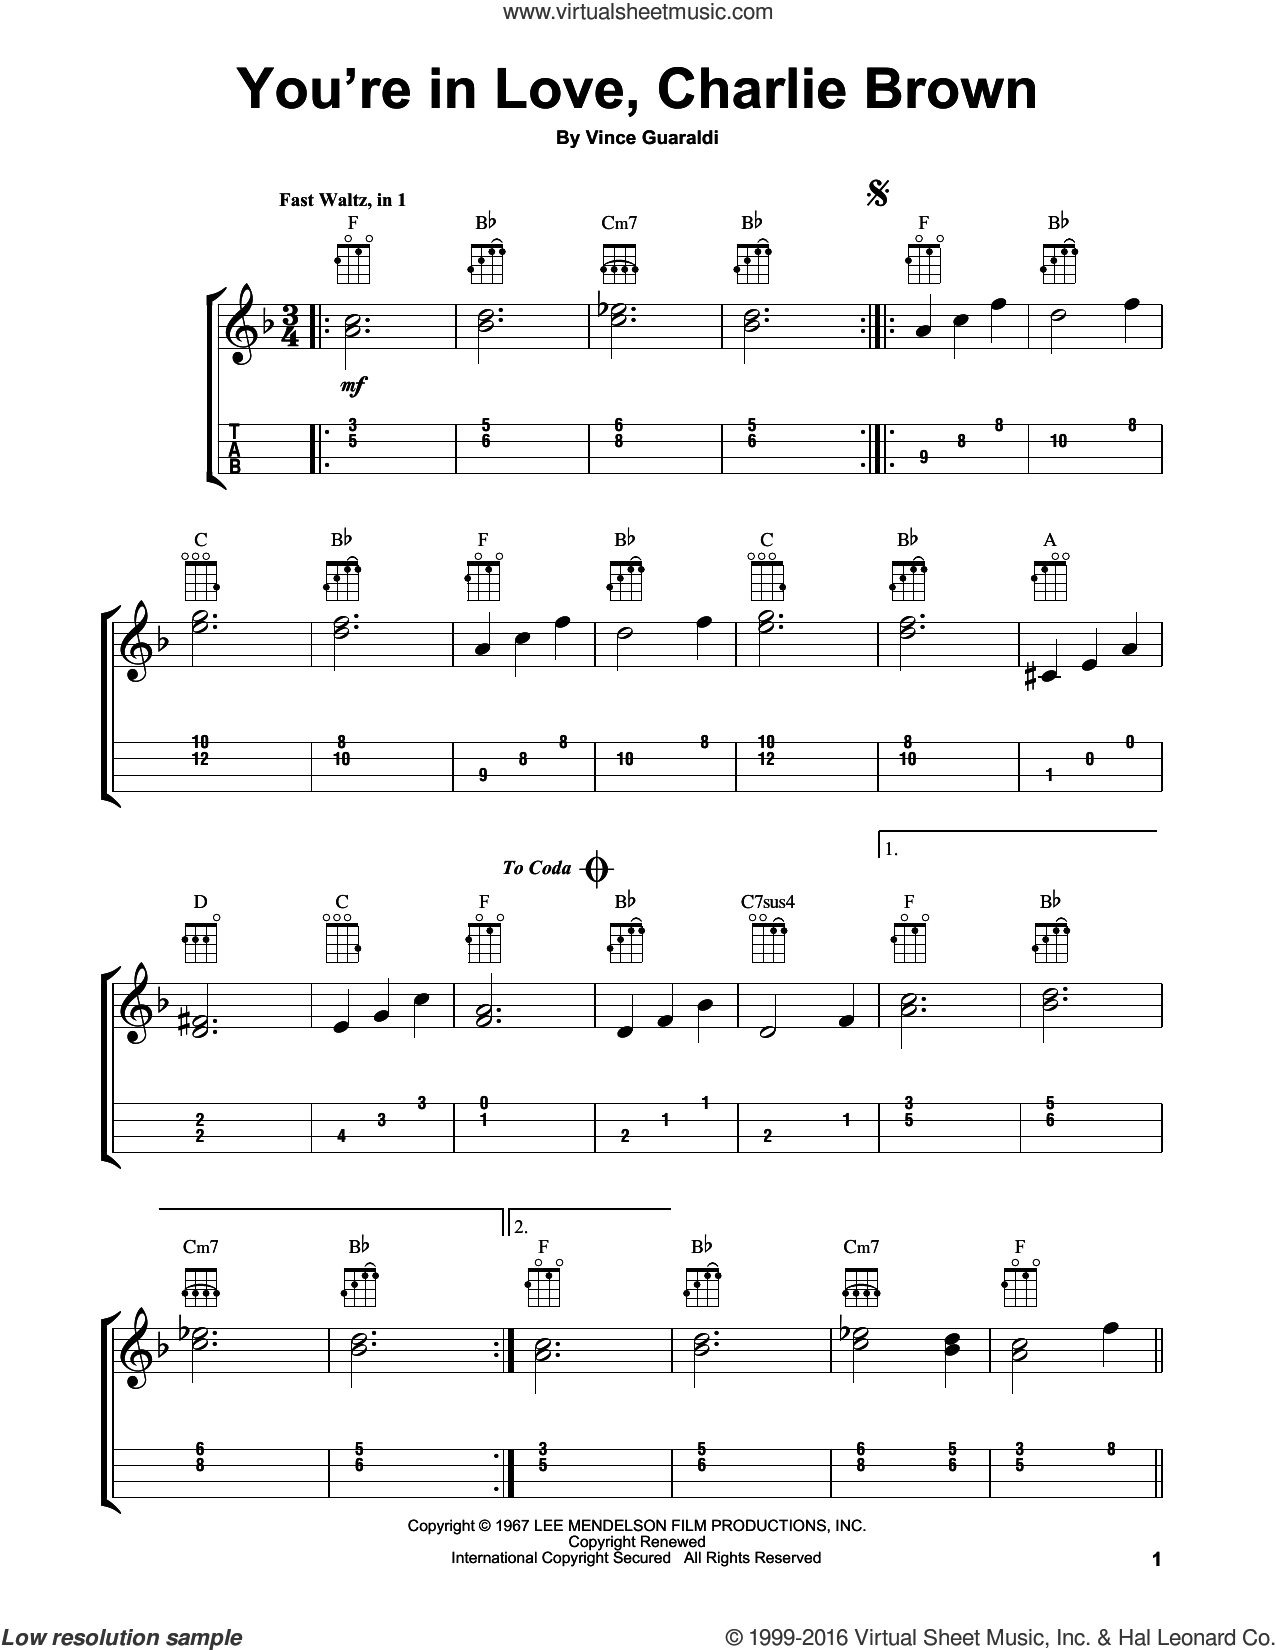 You're In Love, Charlie Brown sheet music for ukulele by Vince Guaraldi, intermediate skill level